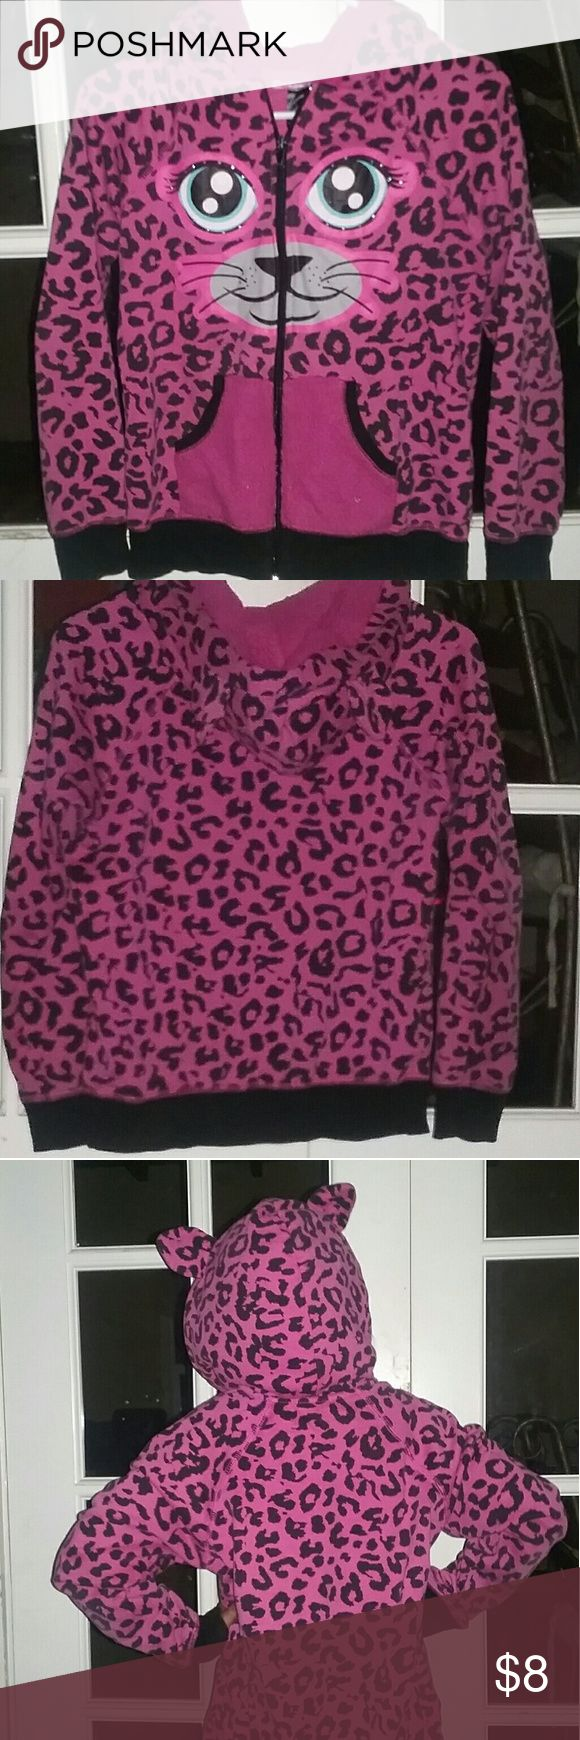 Pink little girl cheetah jacket Pink cheetah jacket with face painted on the front. It also has ears on the hoodie. It has been worn several times and washed many times so size may not be exact. Any reasonable offers considered. Sey Esteem Jackets & Coats